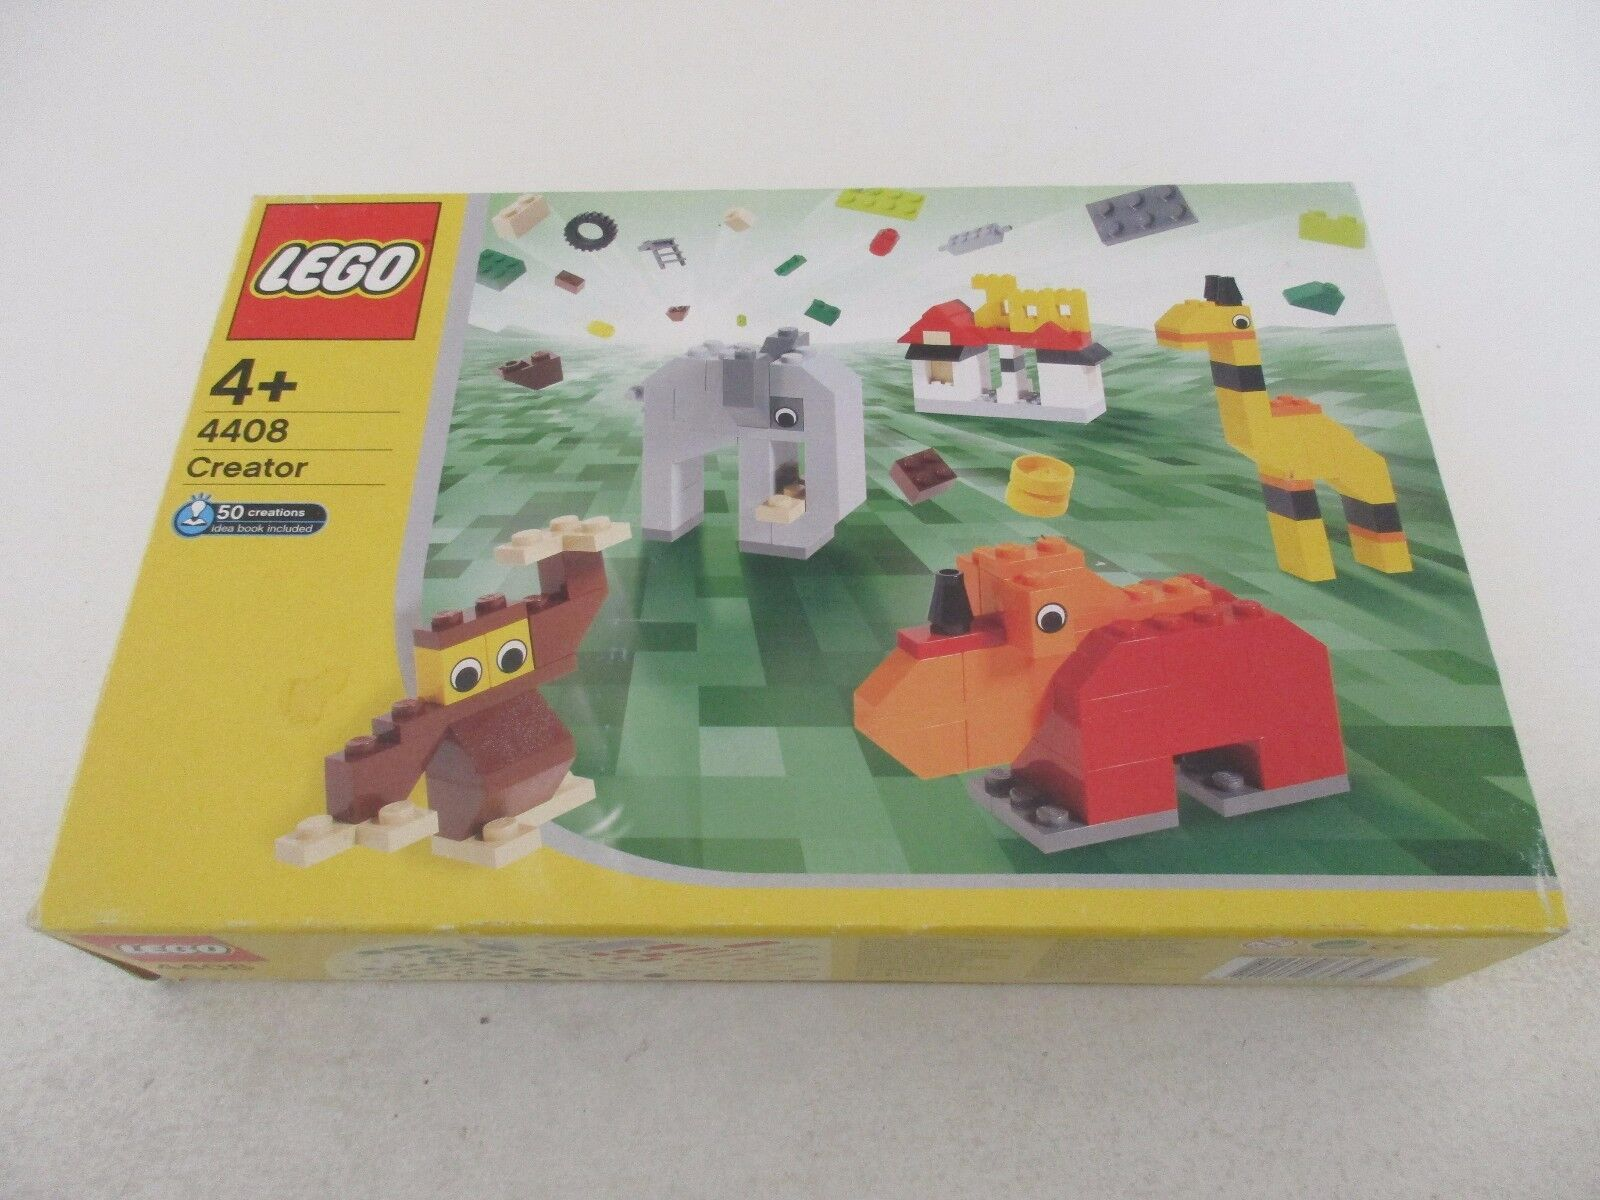 LEGO CREATOR 4408 ANIMALS - COMPLET boite & instructions - LEGO 2004